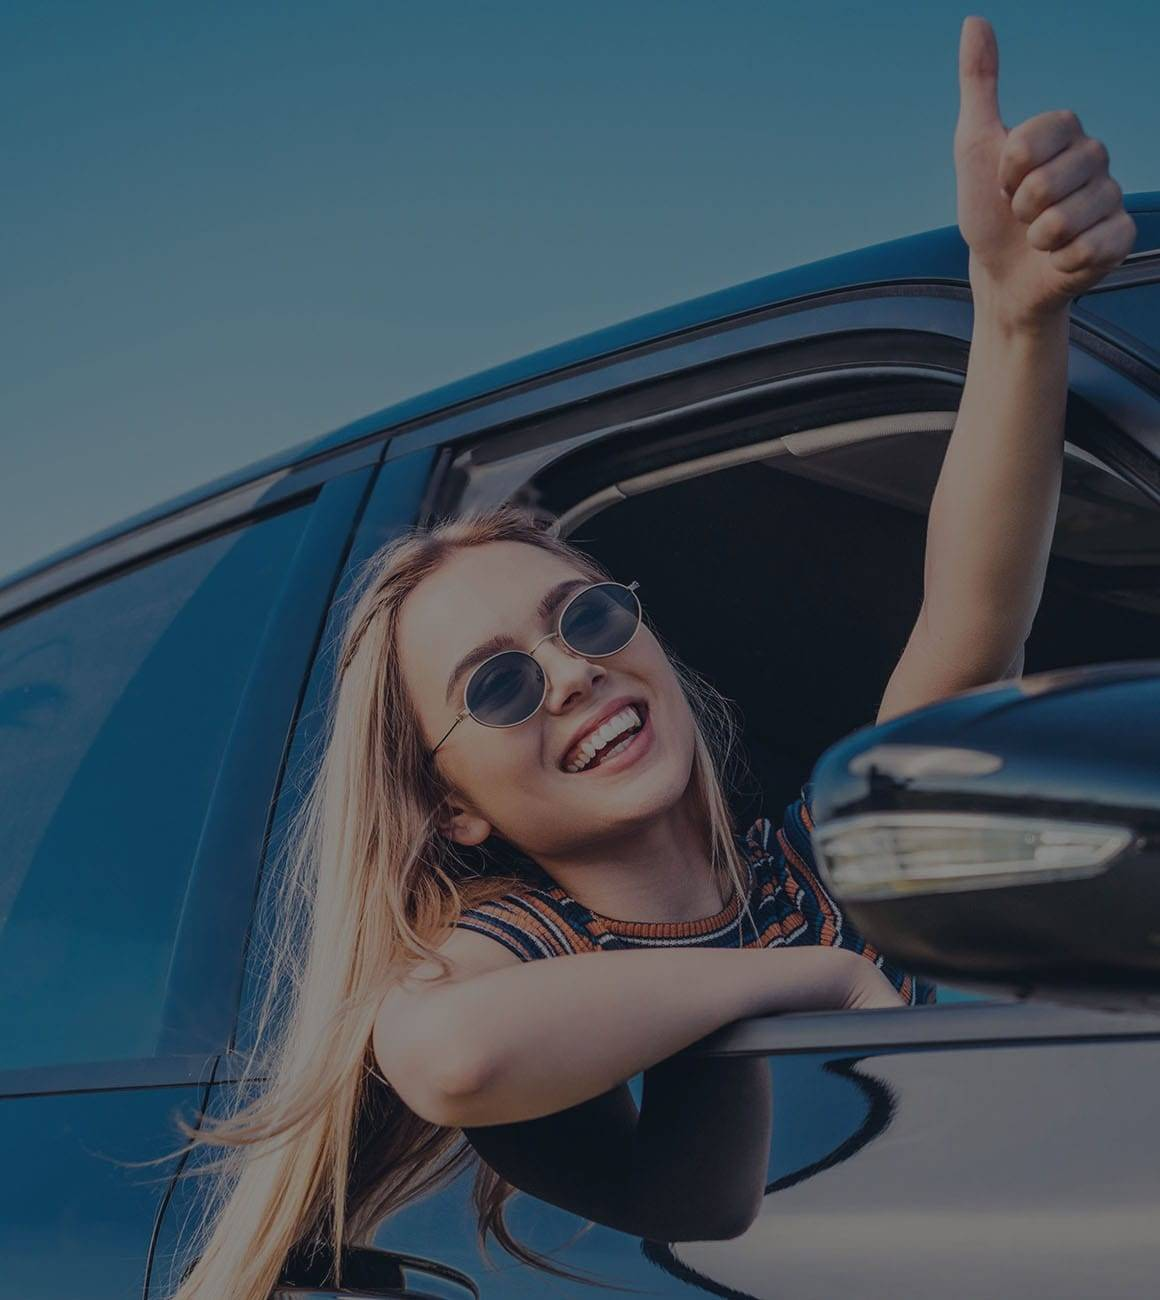 Get the best Diamond car insurance prices today